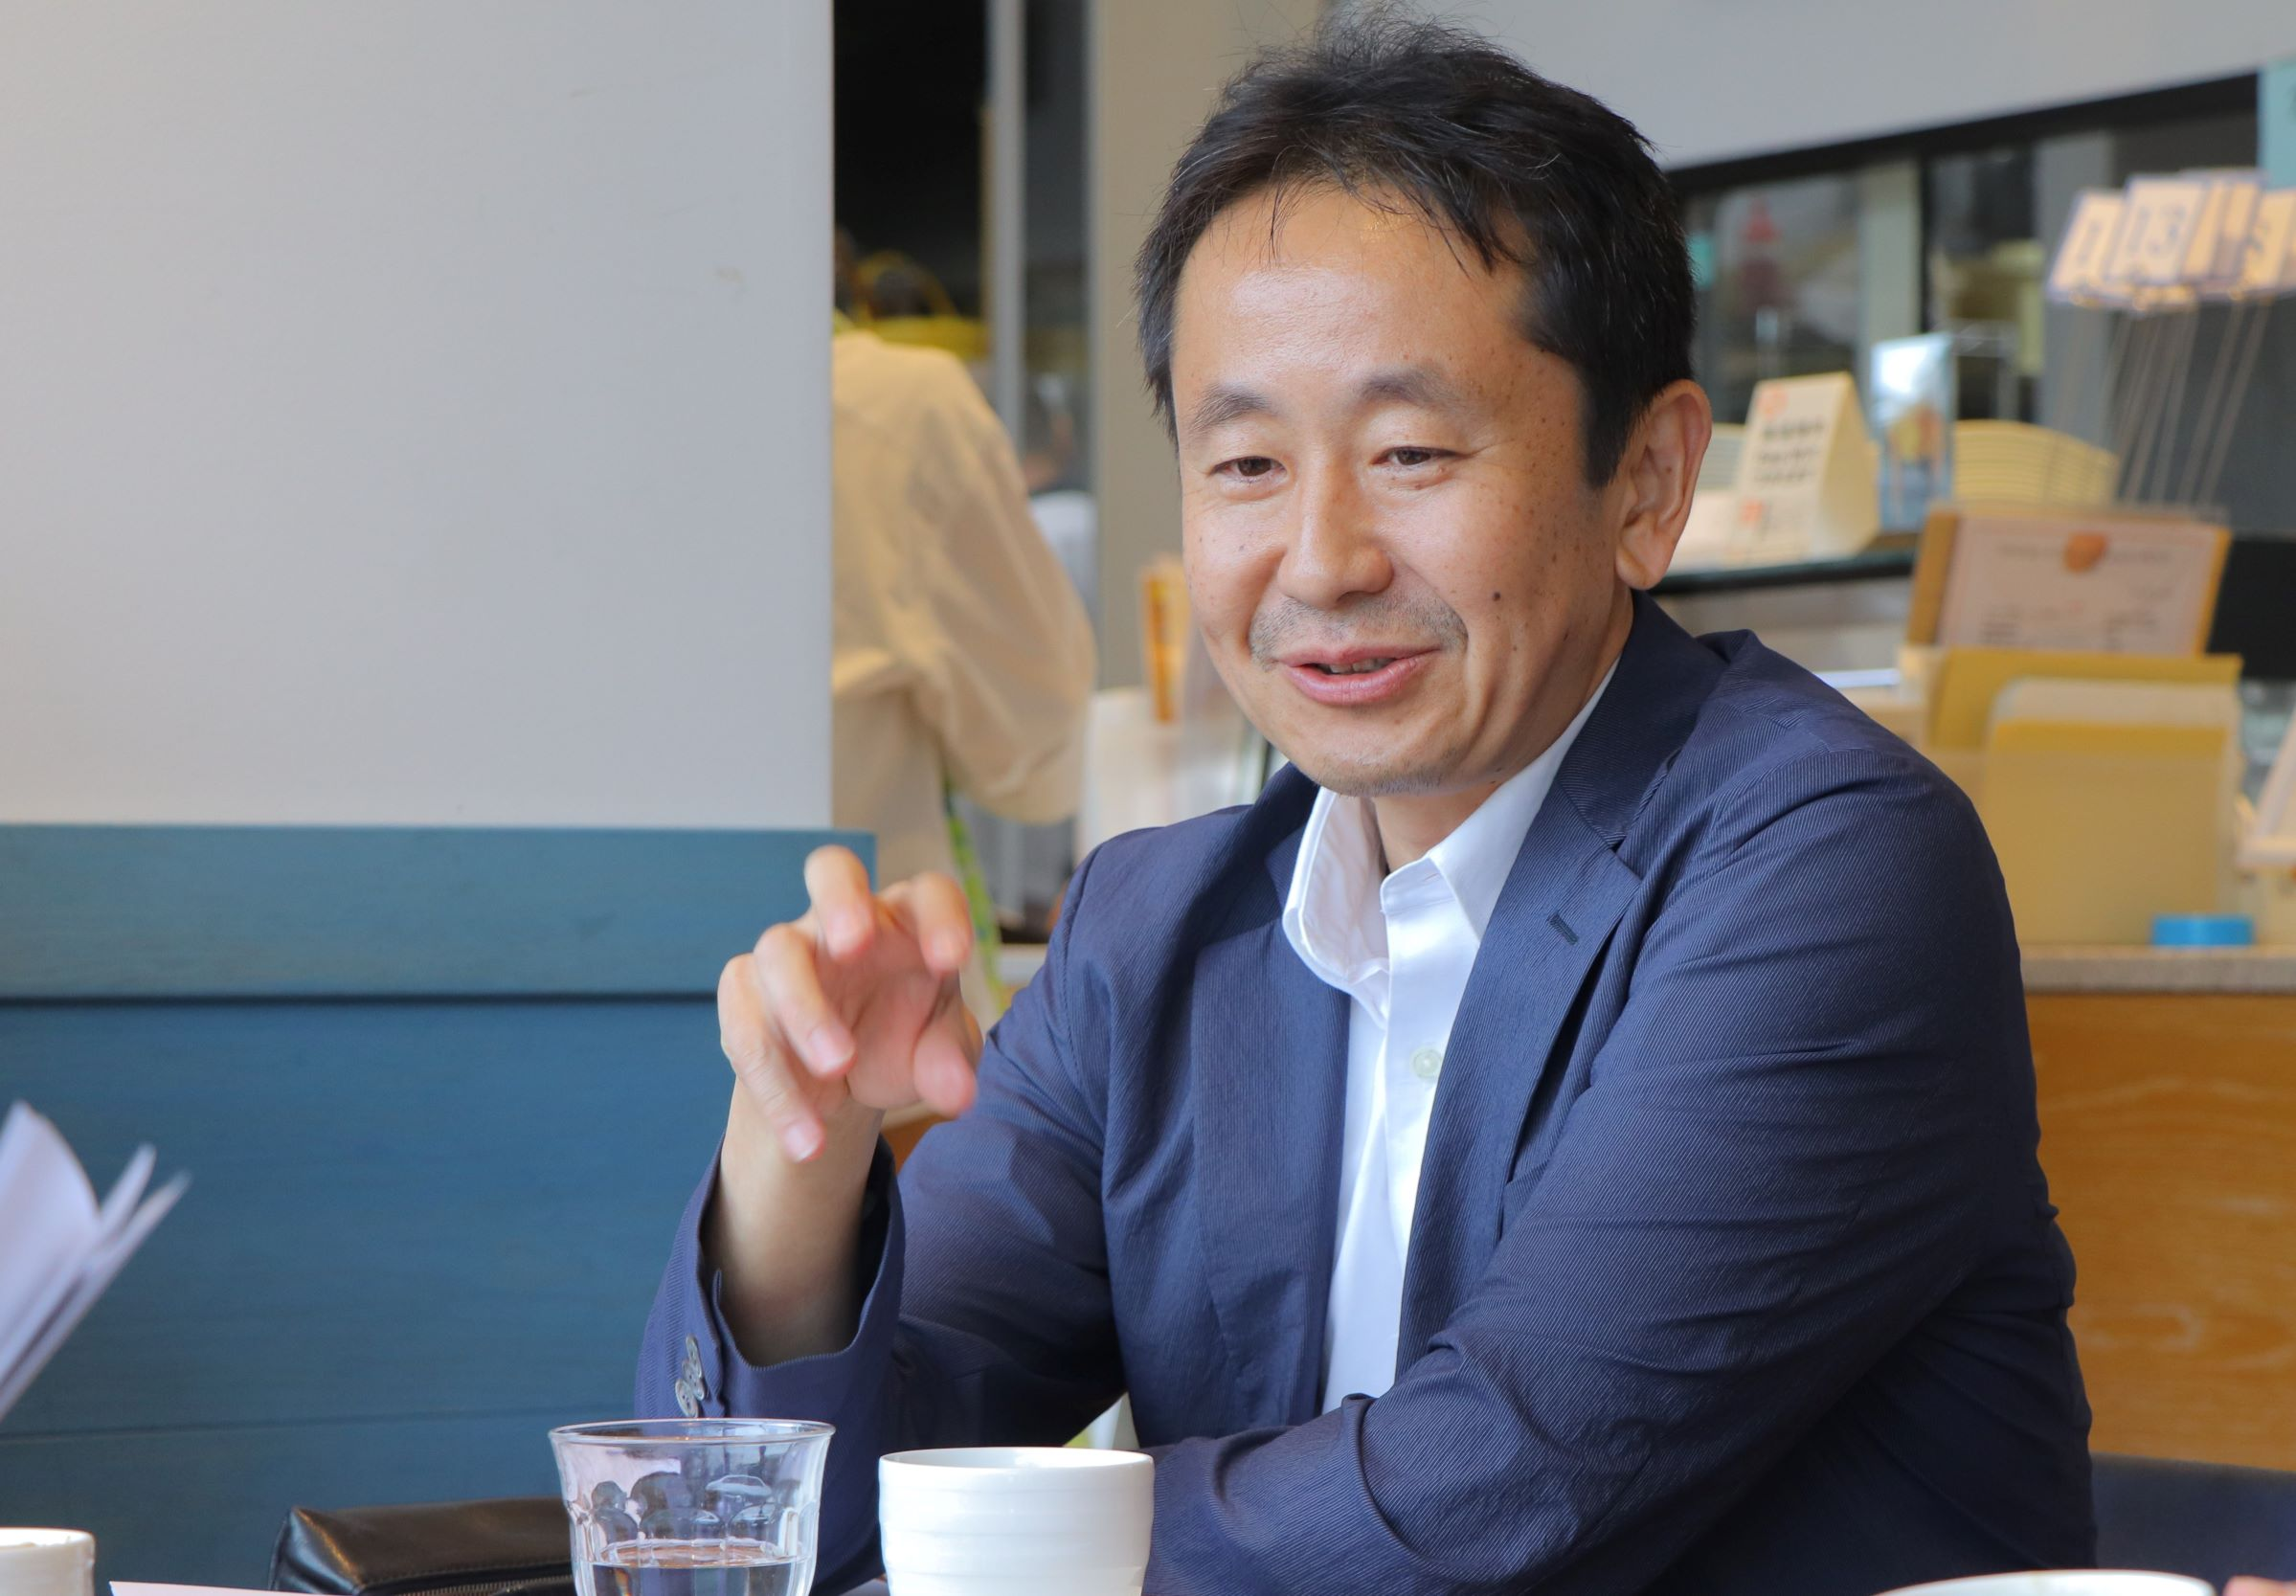 [Koto Who's who in Koto-ku] Hideaki Shimura who supports Fukagawa, Kameido, much town planning in Koto City including Sunamachi including Toyosu with Shibaura Institute of Technology architecture department's professor Hideaki Shimura Shibaura Institute of Technology.